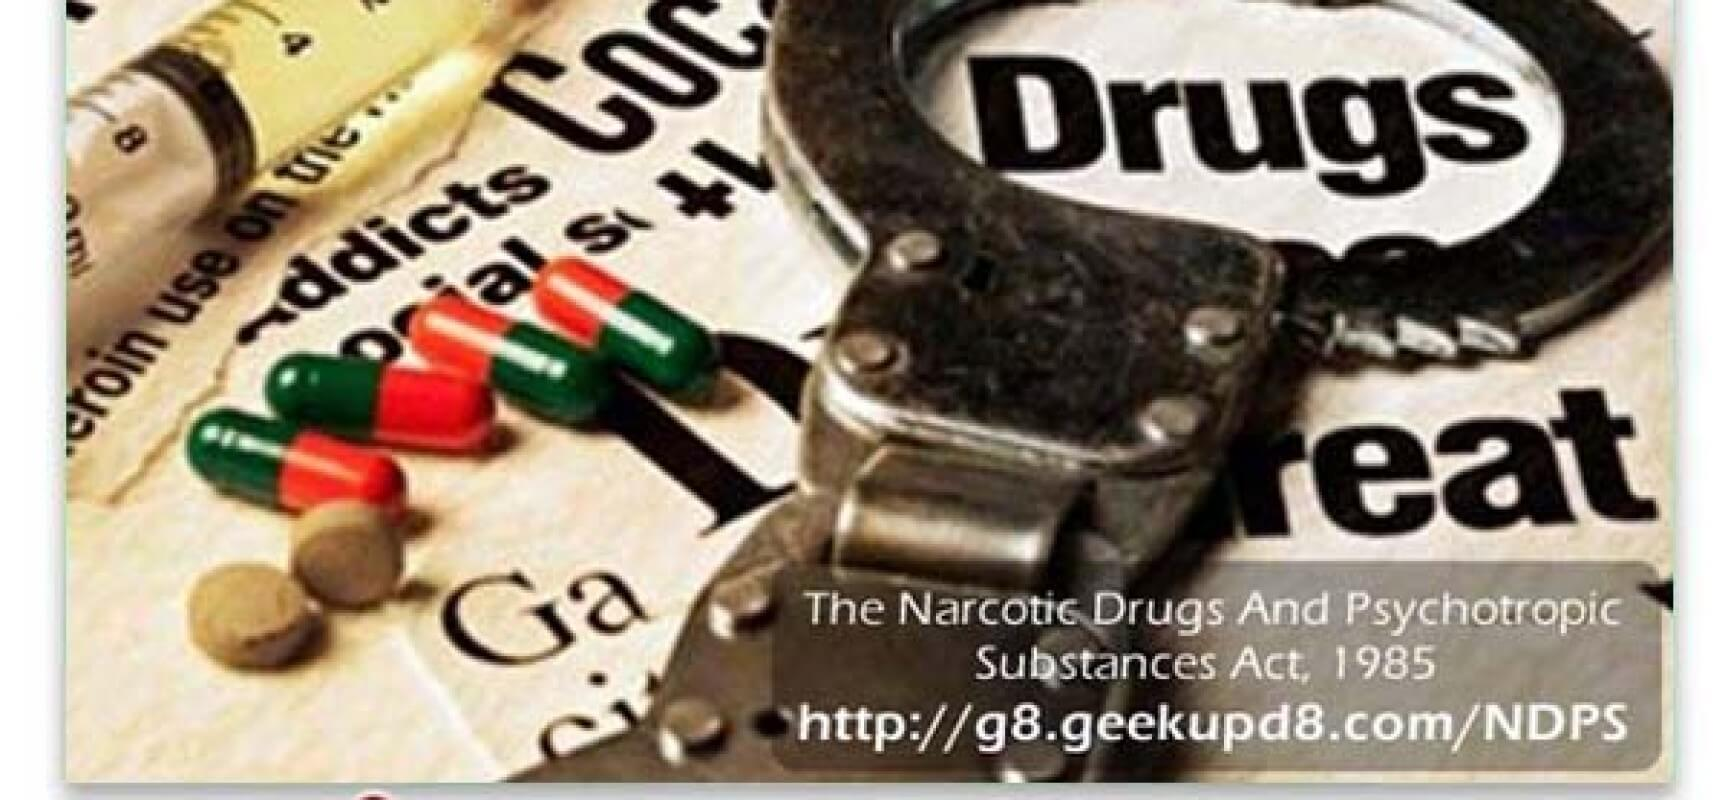 Clonazepam narcotic drugs - | Online pharmacy - determus.com